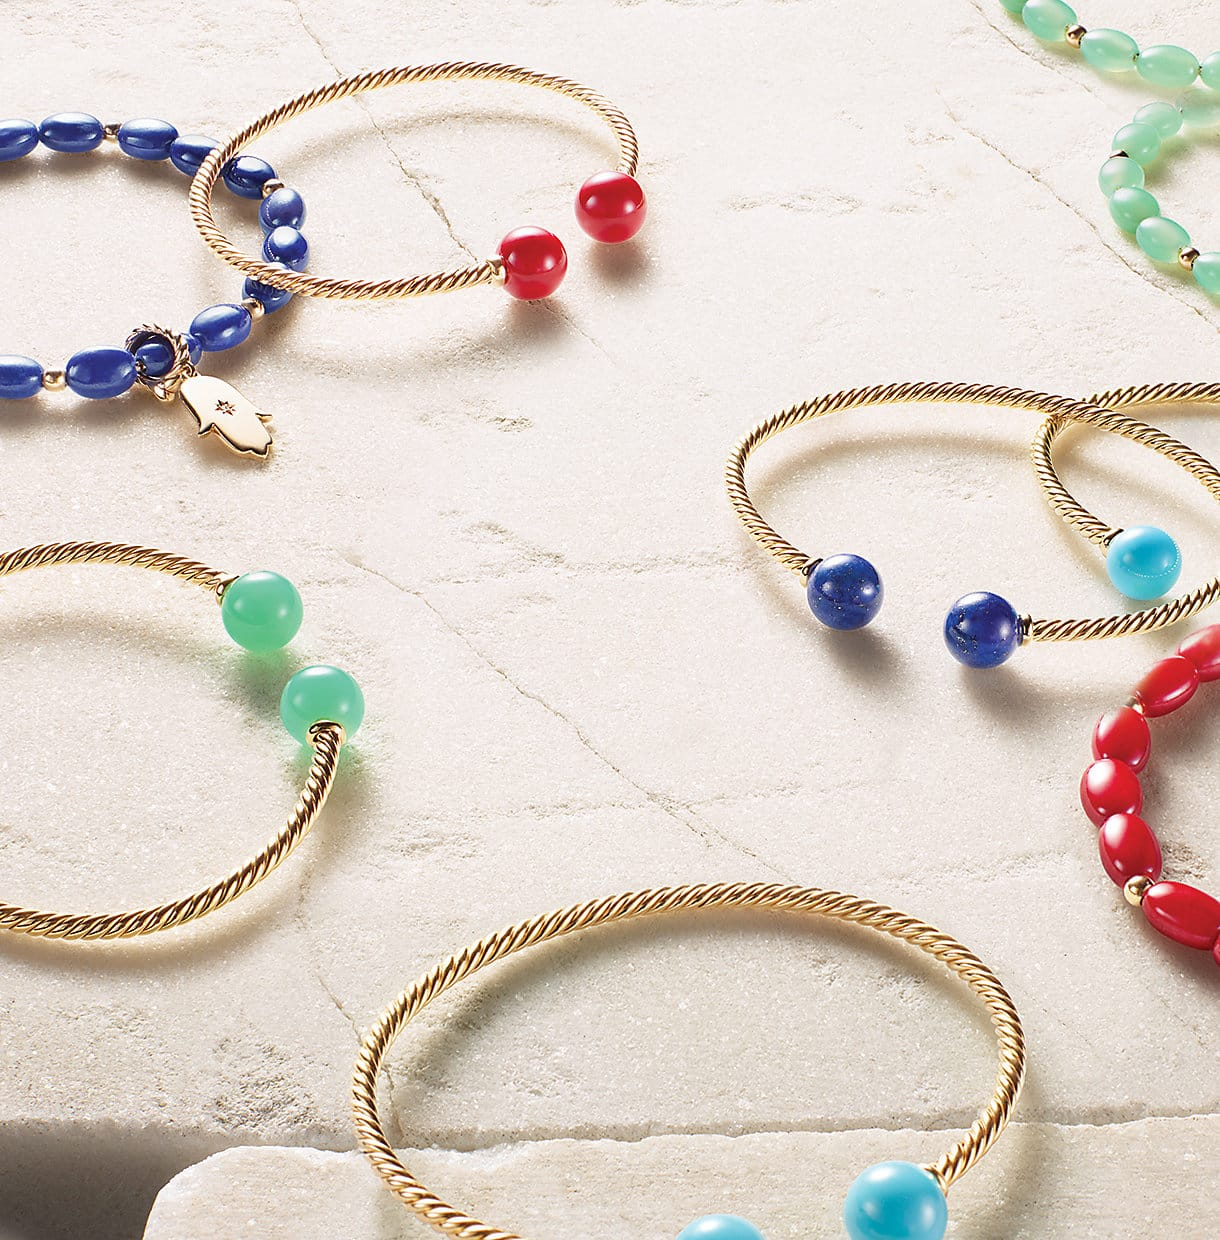 Solari bracelets in 18K yellow gold with chrysoprase, dyed red sea bamboo, lapis lazuli and turquoise, and Spiritual Beads bracelets in 18K yellow gold with chrysoprase, dyed red sea bamboo and lapis lazuli with a gold Hamsa charm, on a stone.